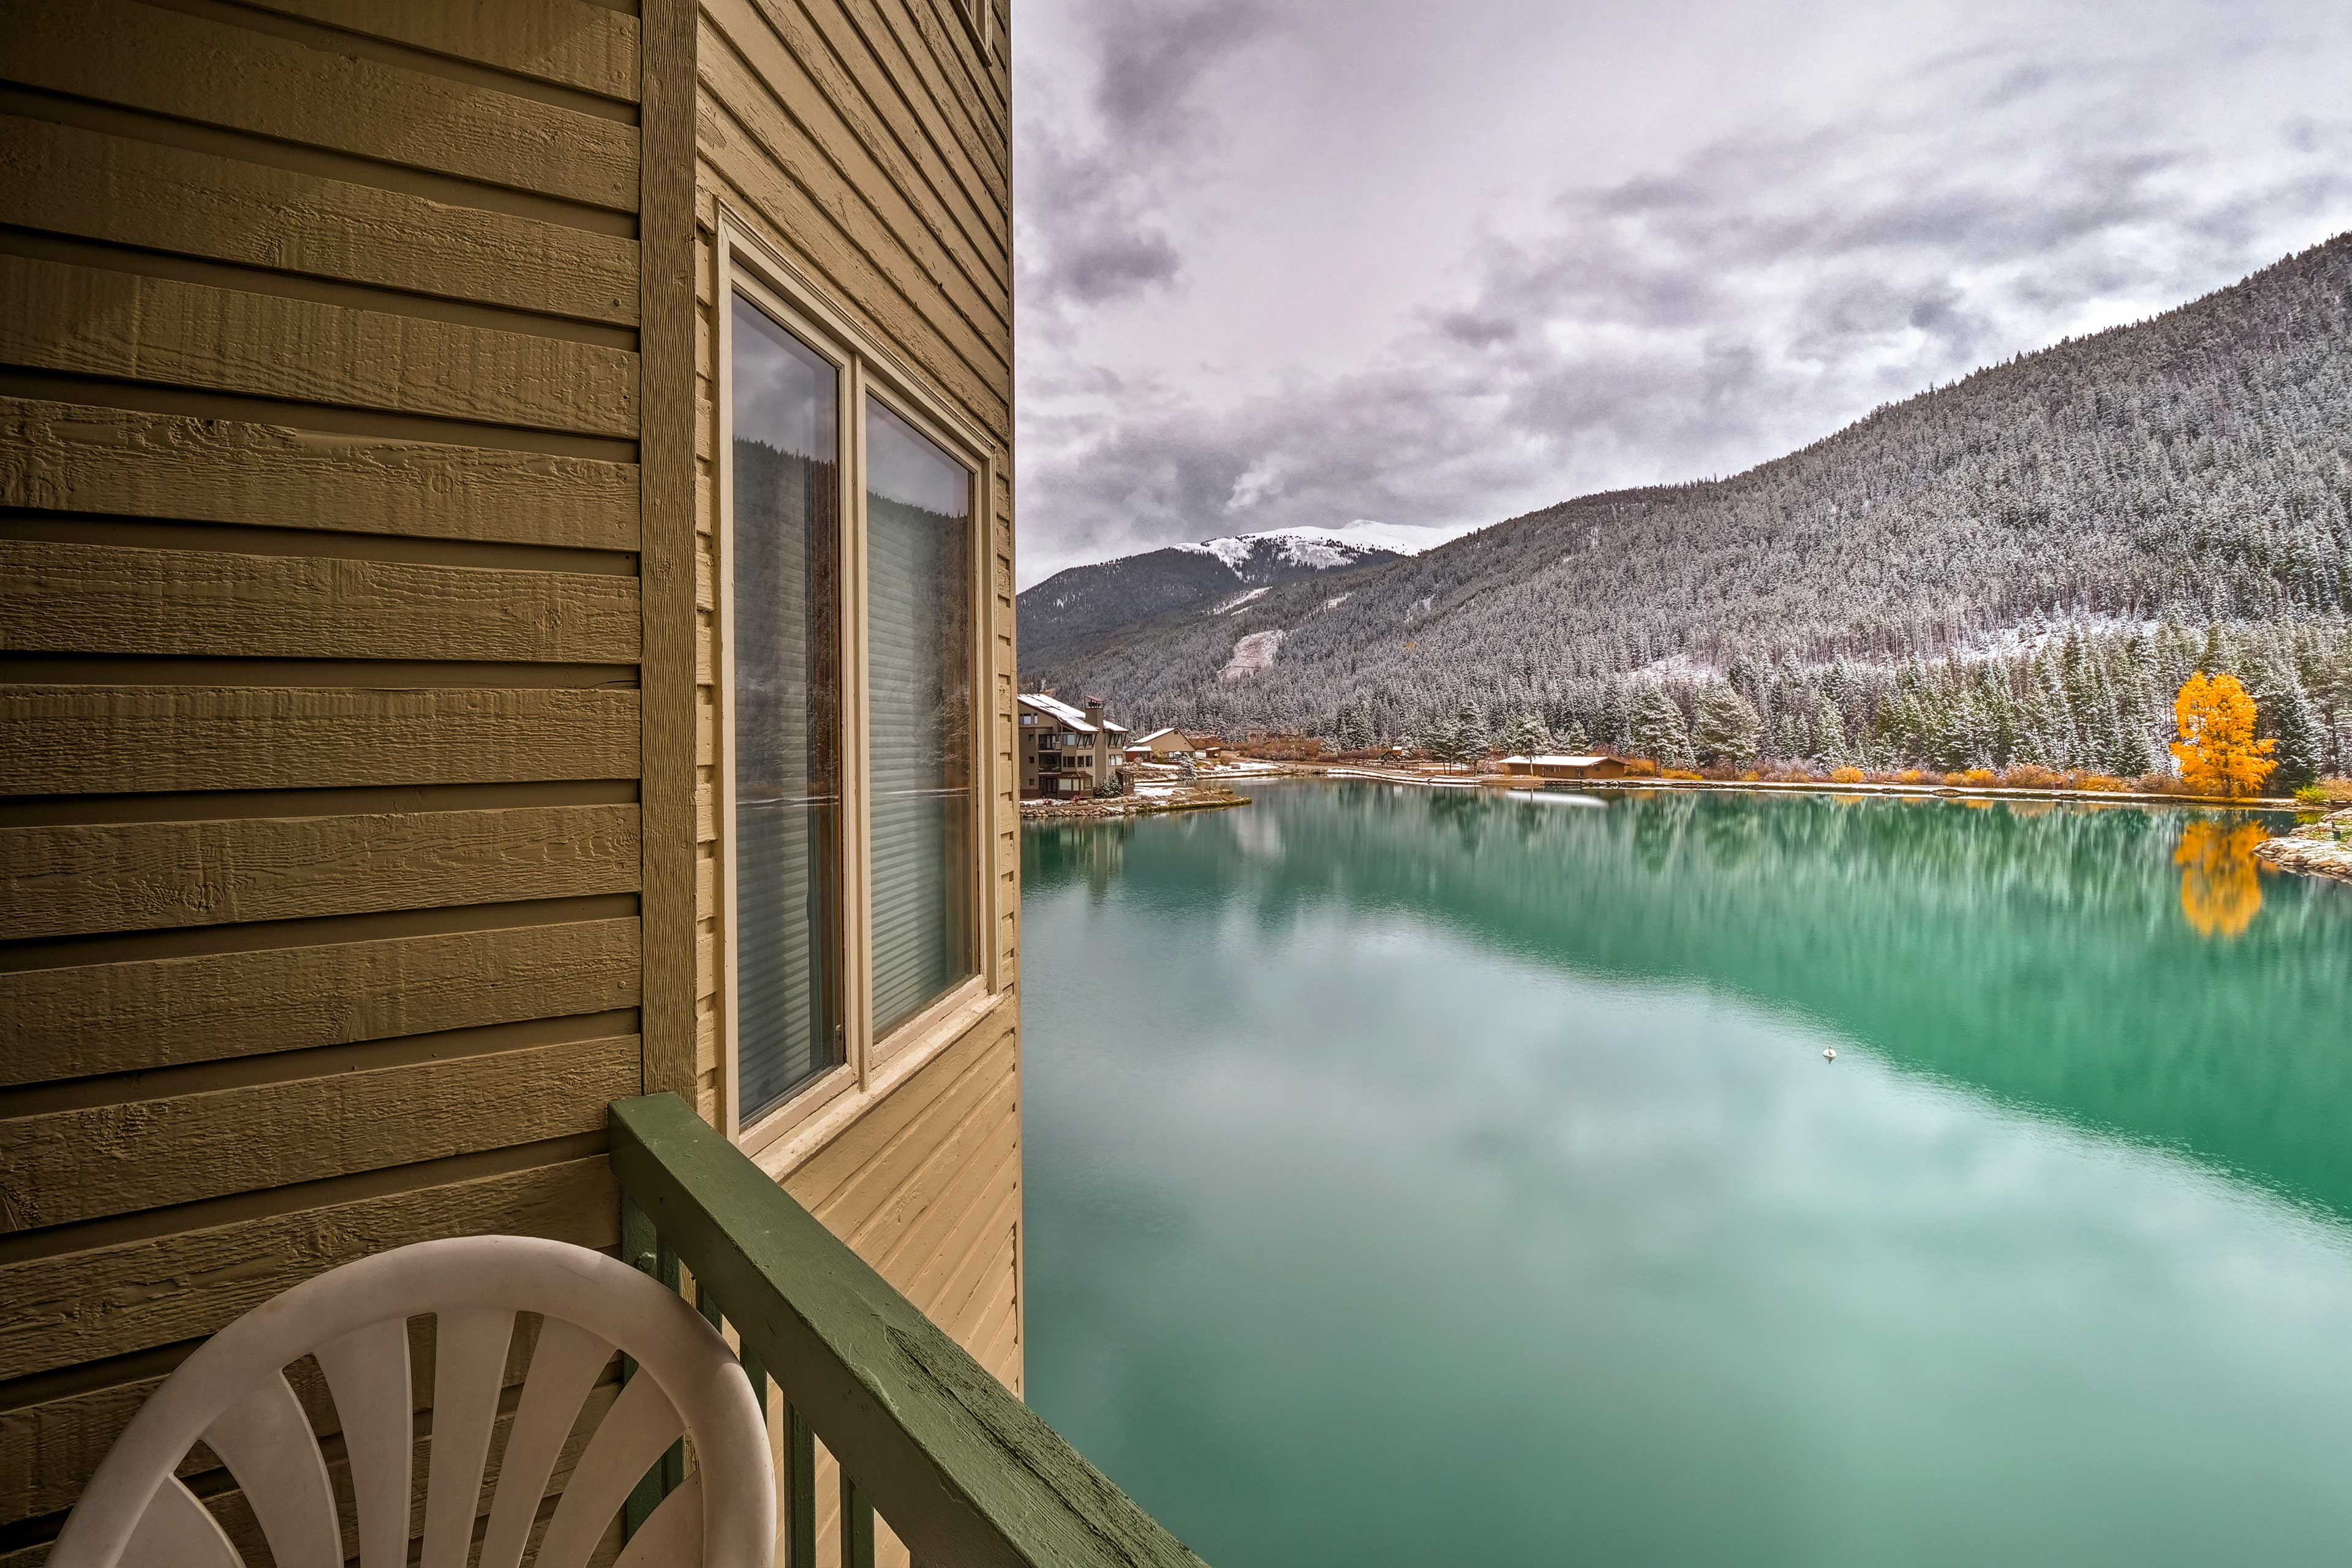 Enjoy spectacular views of the surrounding scenery from the private balcony.